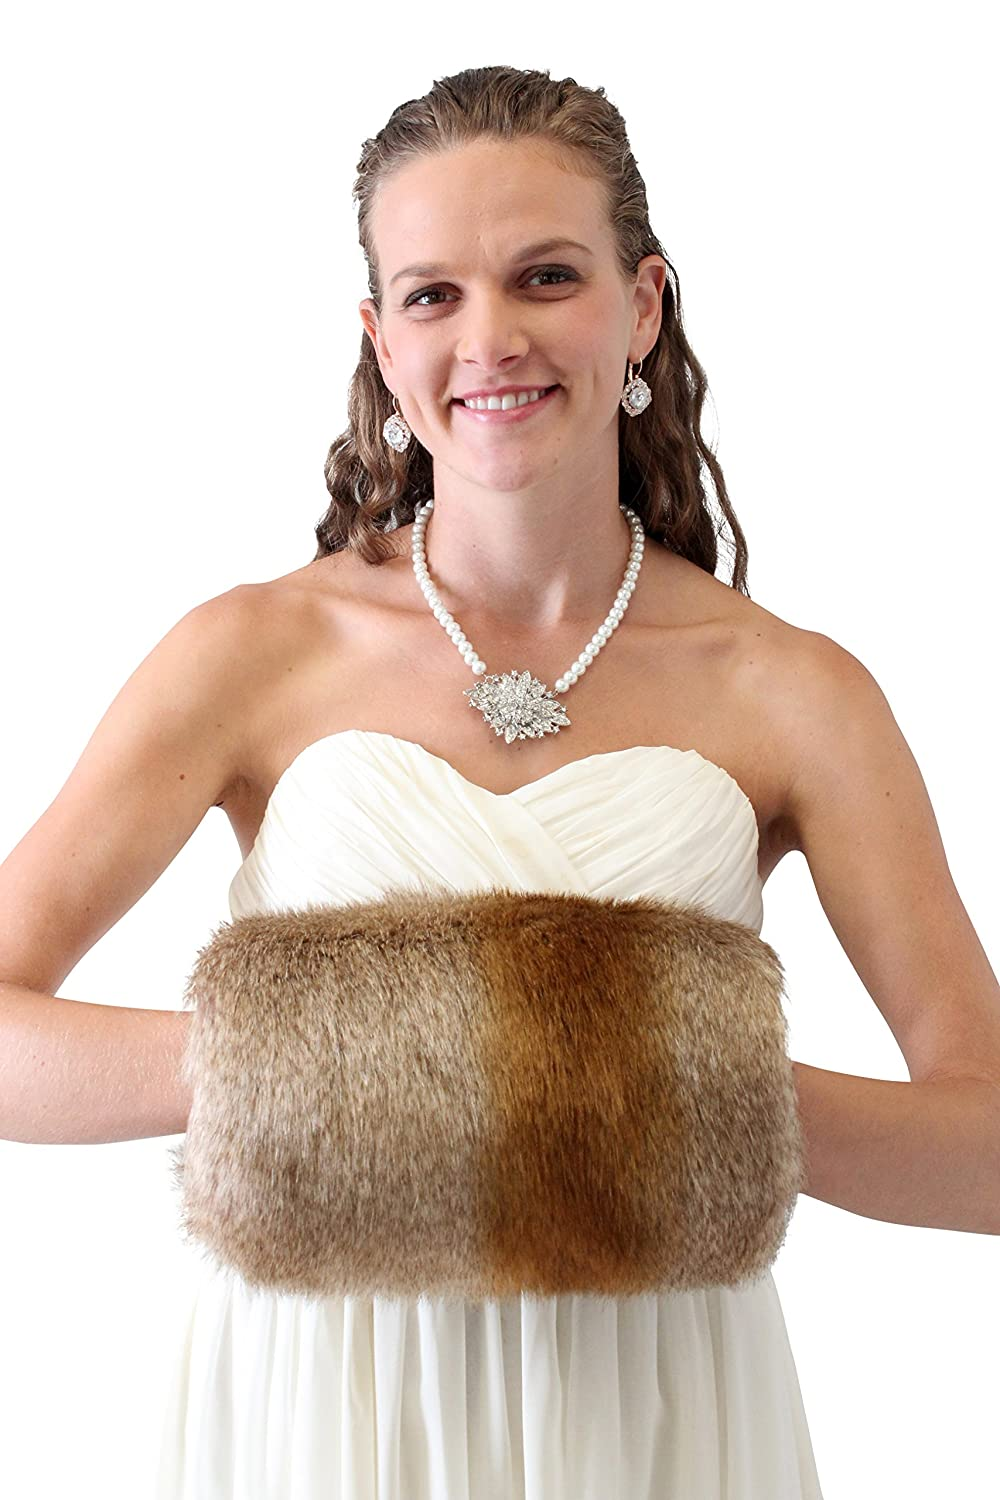 Tion Bridal Women's Faux Fur Handmuff Large Tion Design Bridal Fur Muff Fur Warmer 270F-VBRN